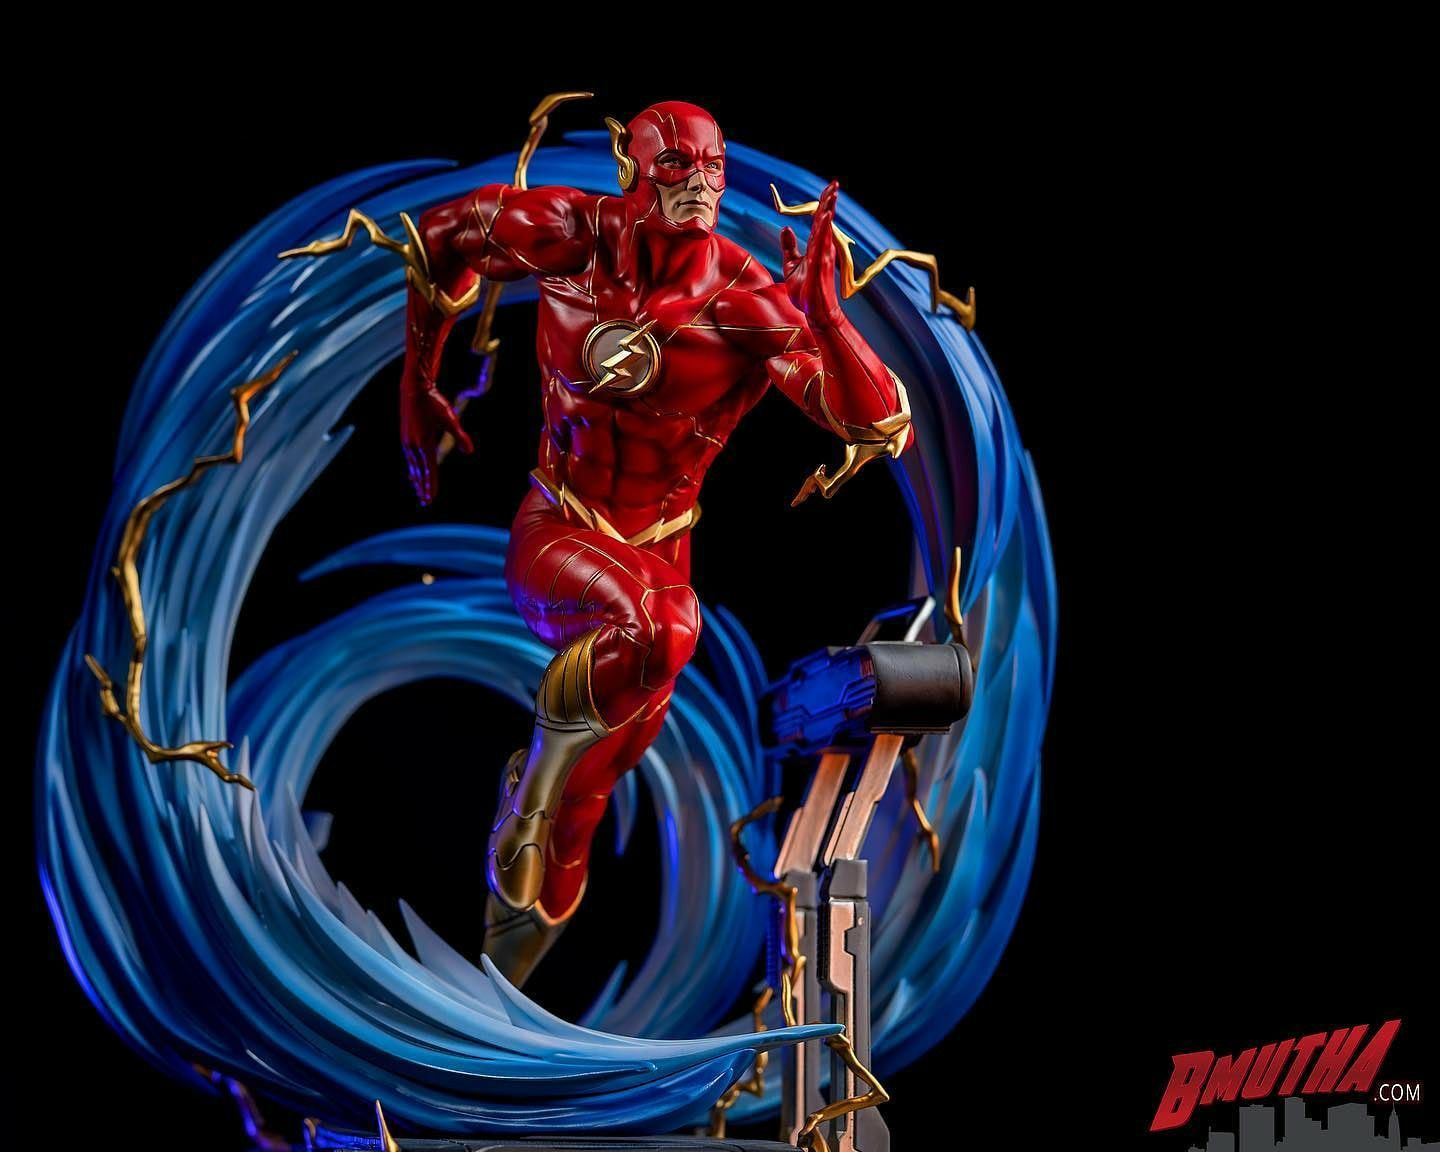 The Fastest Man Alive Dc Comics Artwork Dc Comics Art Dc Comics Heroes